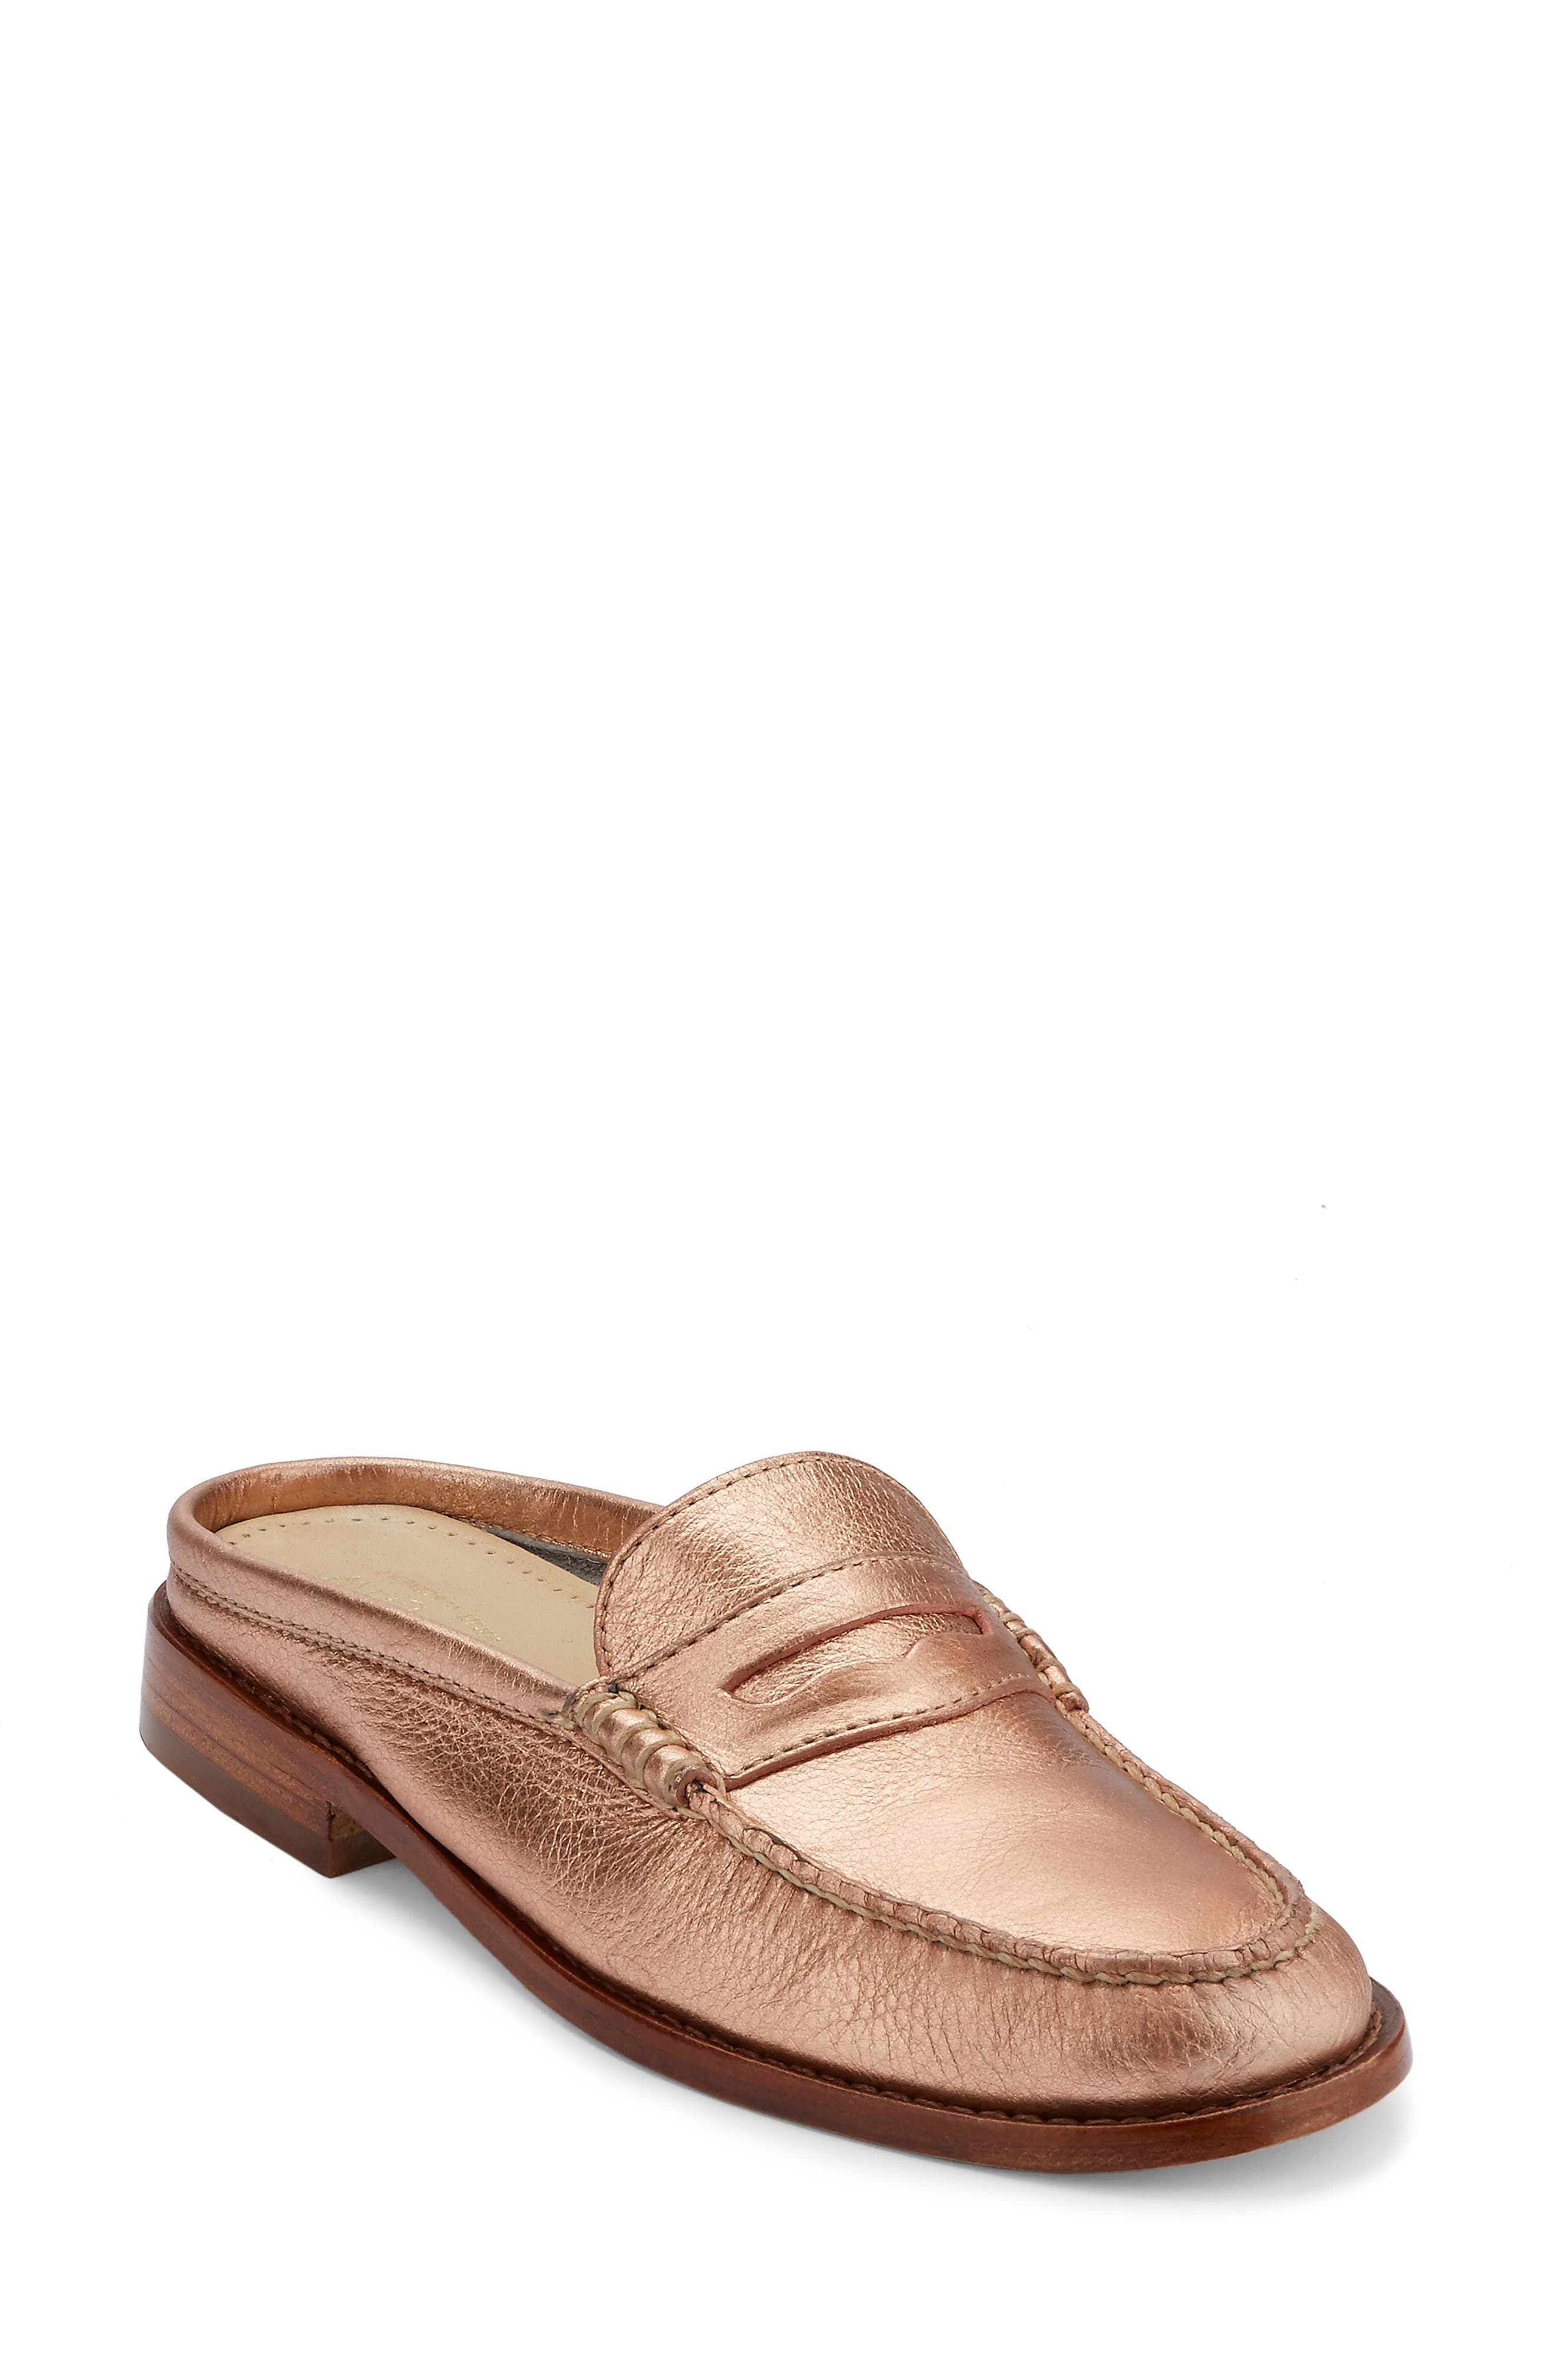 Wynn Loafer Mule,                             Main thumbnail 19, color,